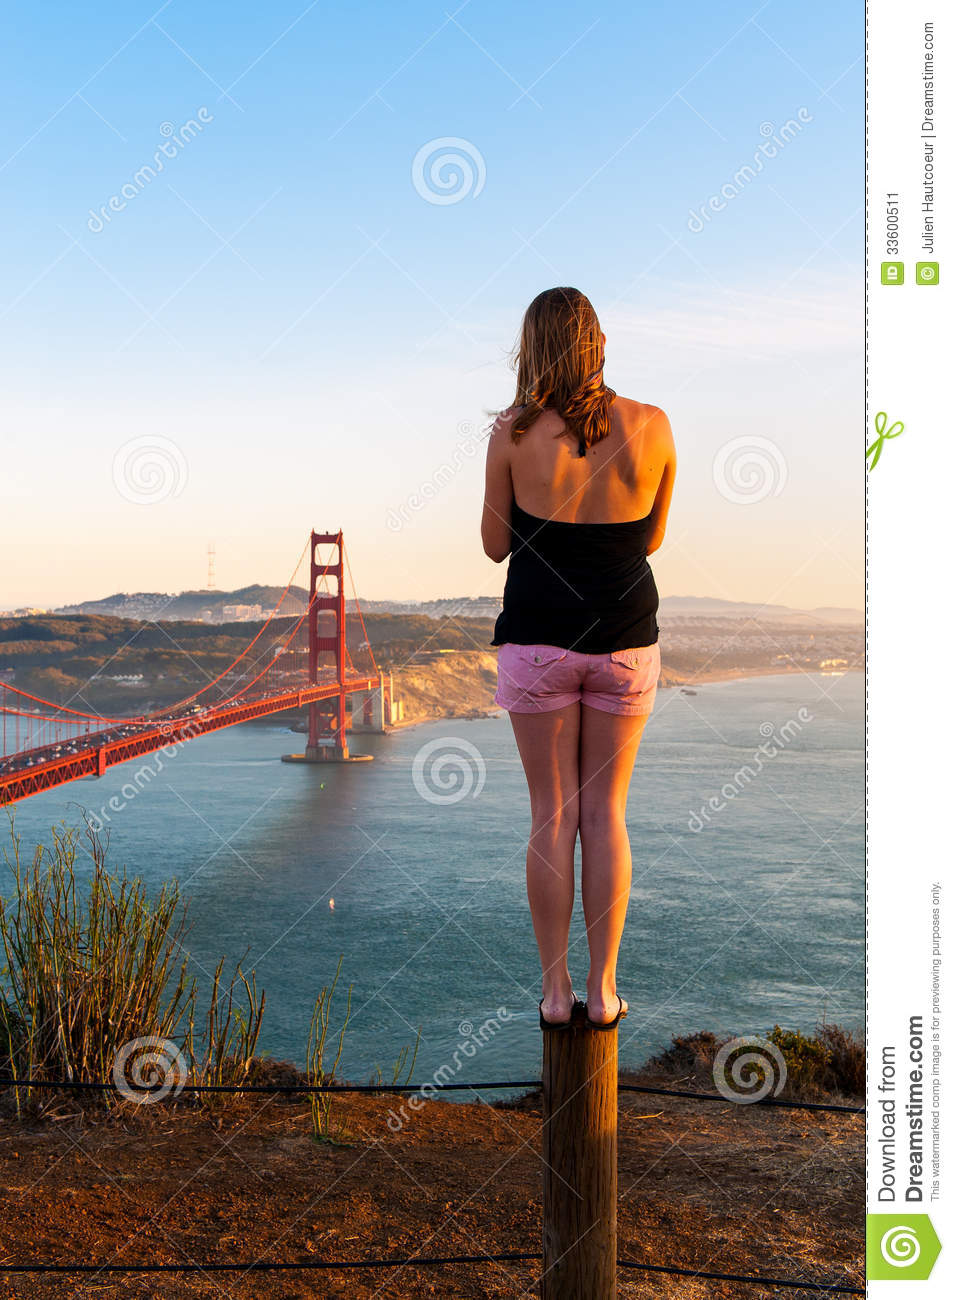 A Girl Looks At The Golden Gate Bridge In San Francisco